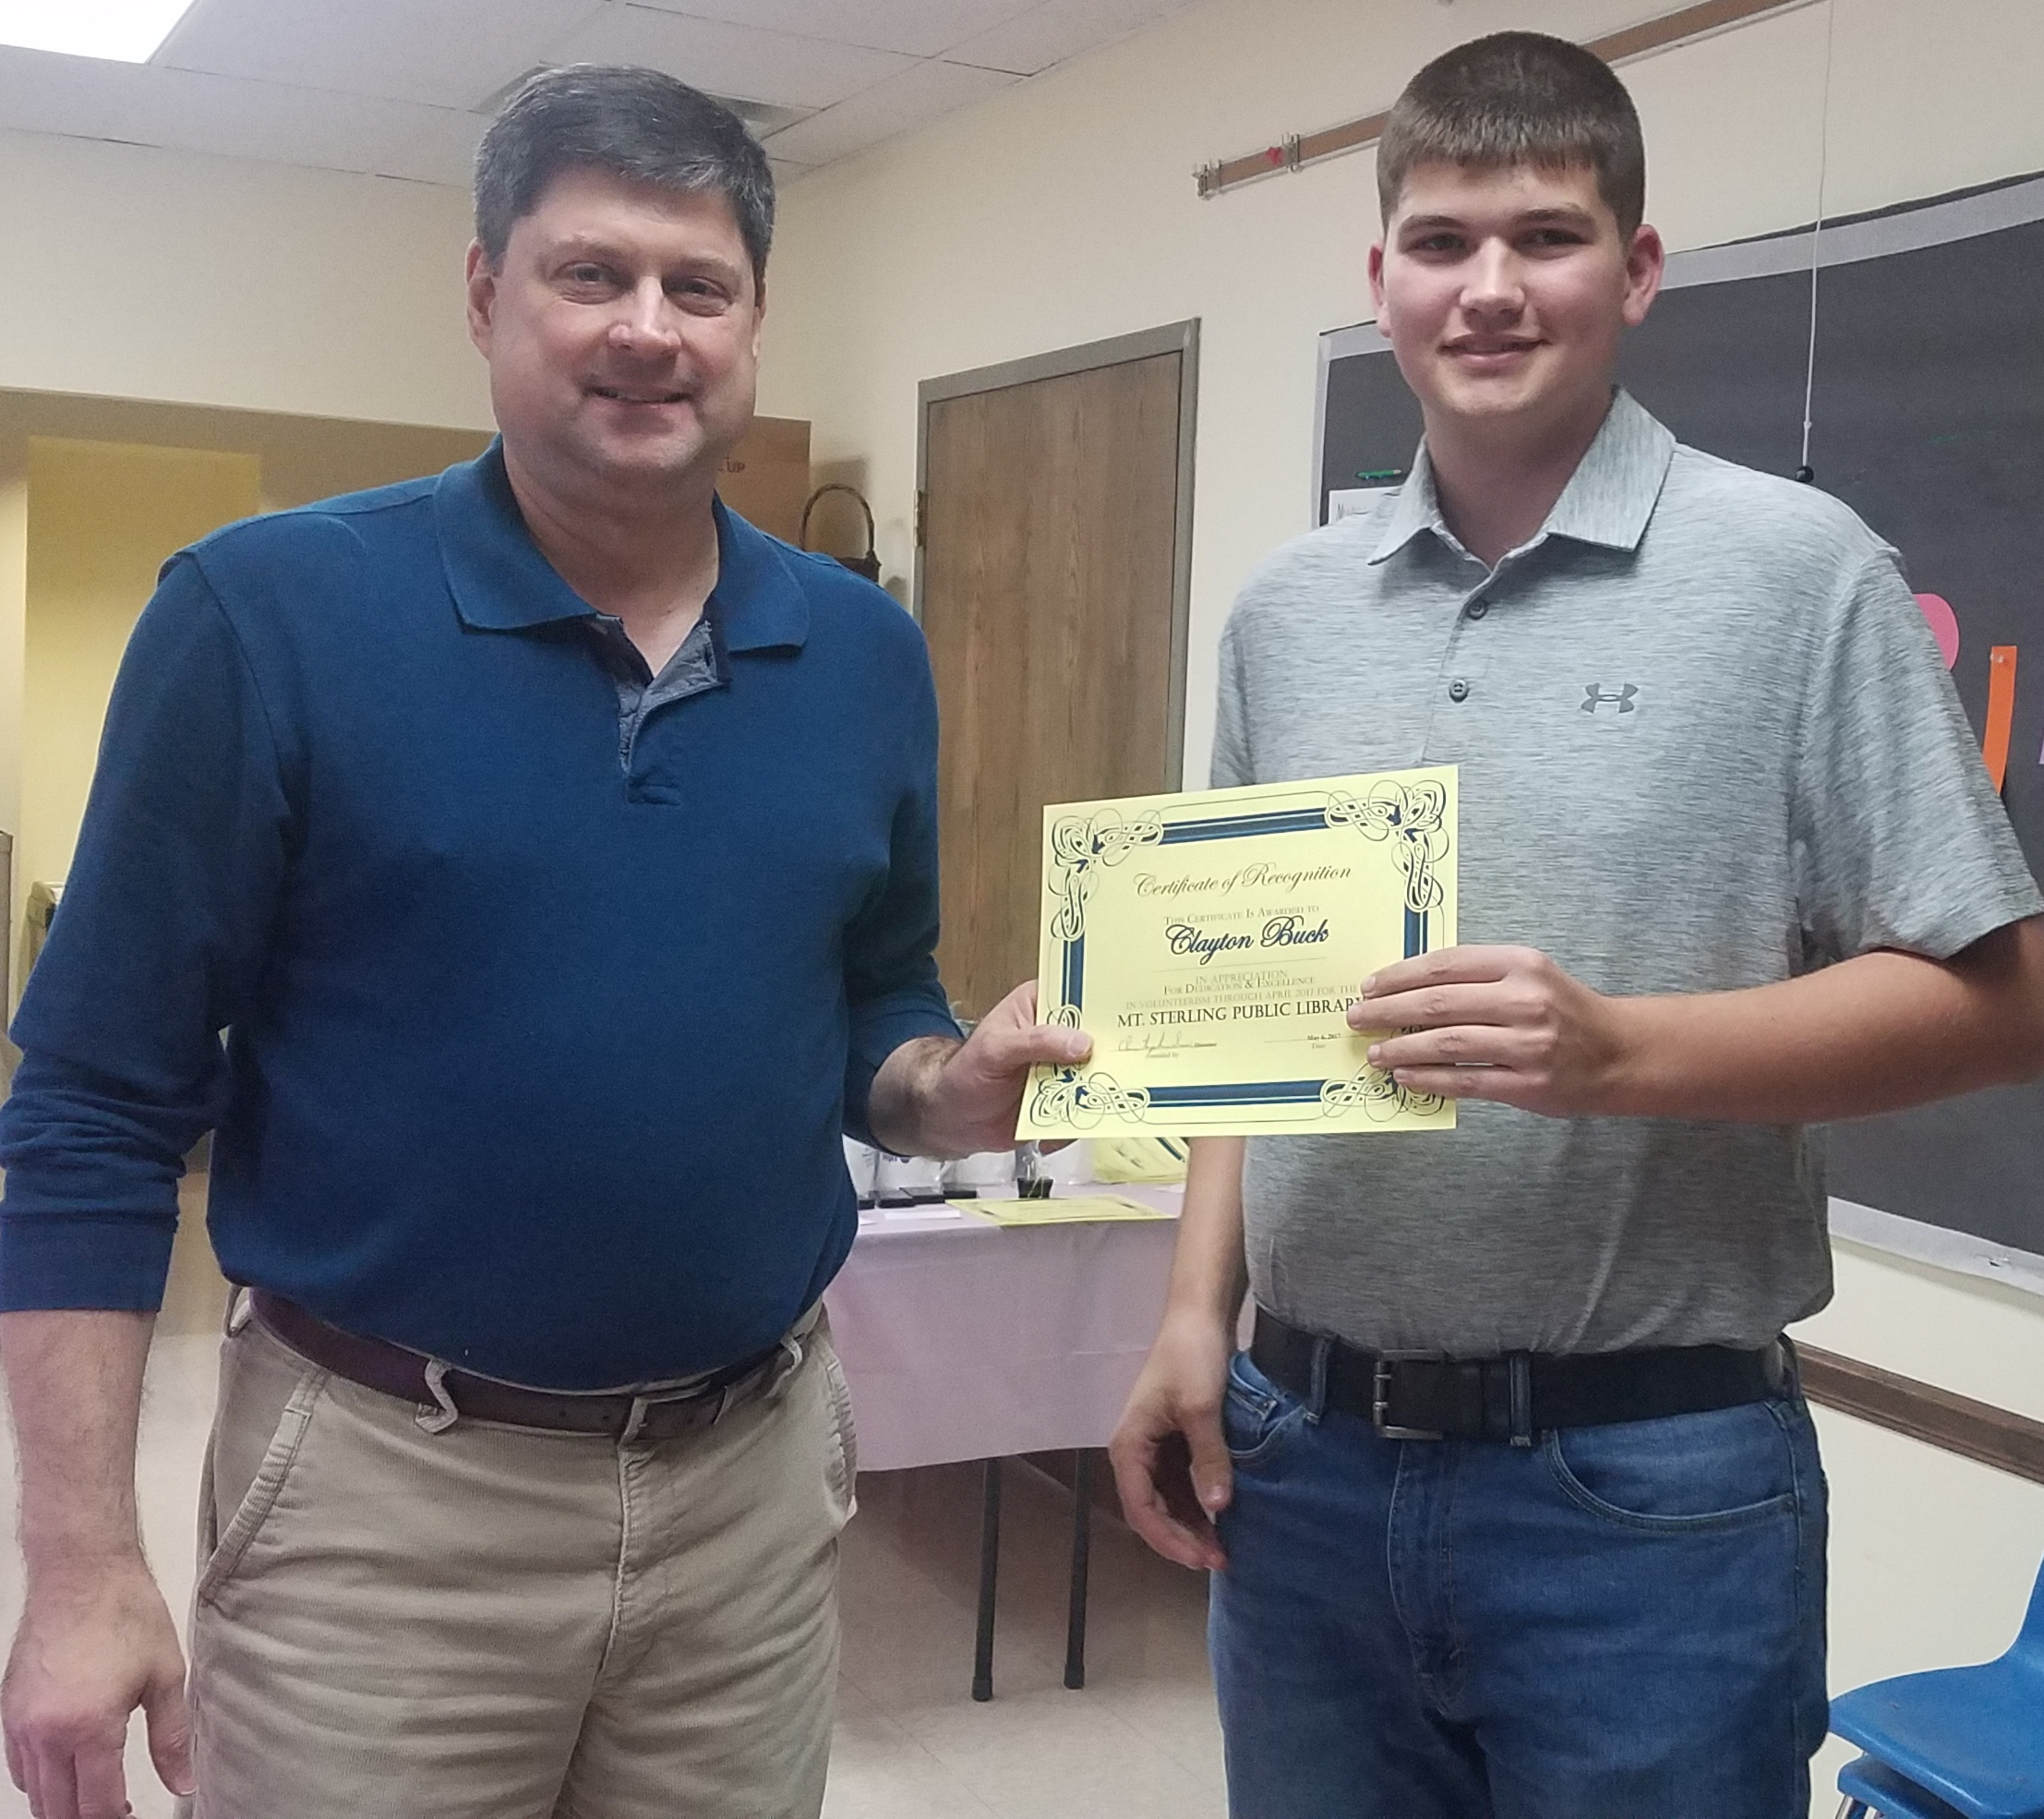 Clayton Buck received his recognition certificate as a volunteer library page.  Clayton volunteers monthly at the library, and is a Junior at Grove City Christian high school.